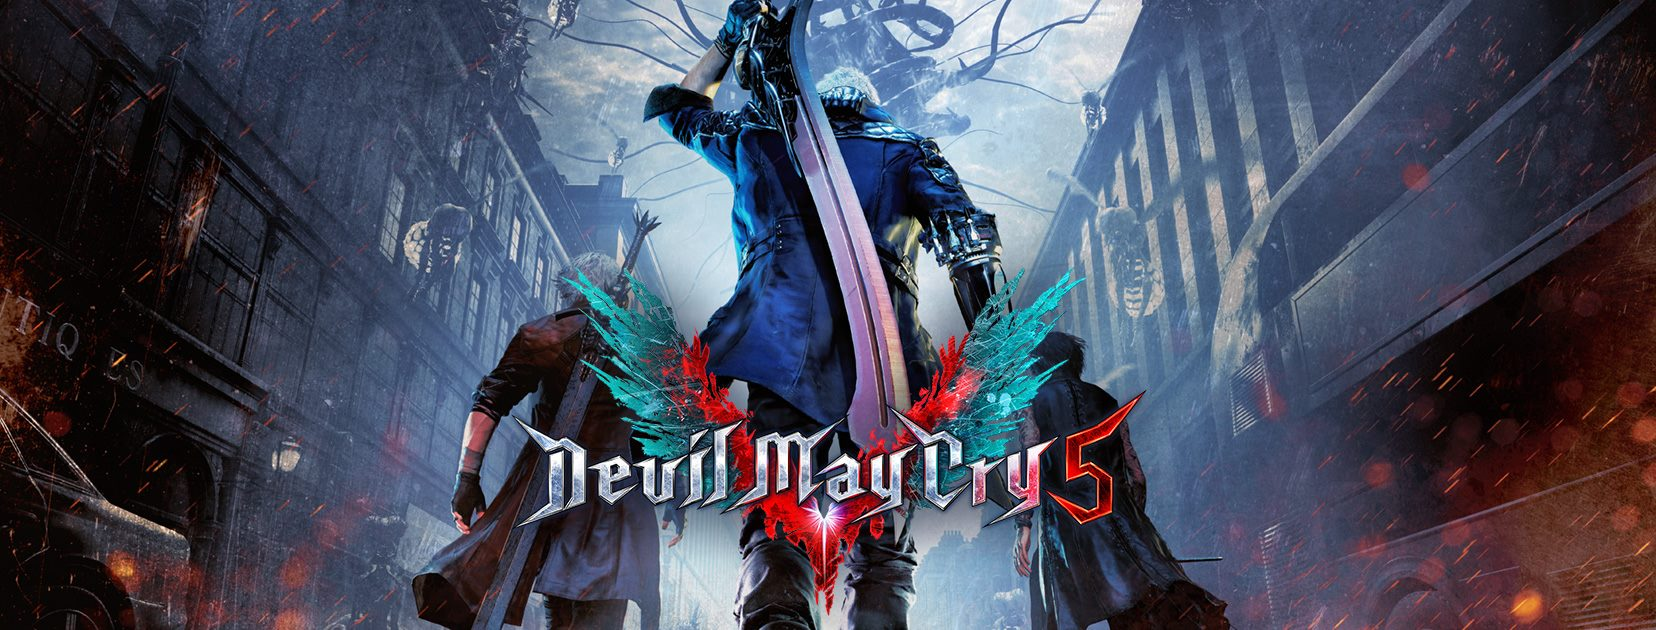 35199080_1812104355522254_7705661268828356608_o.jpg - Devil May Cry 5